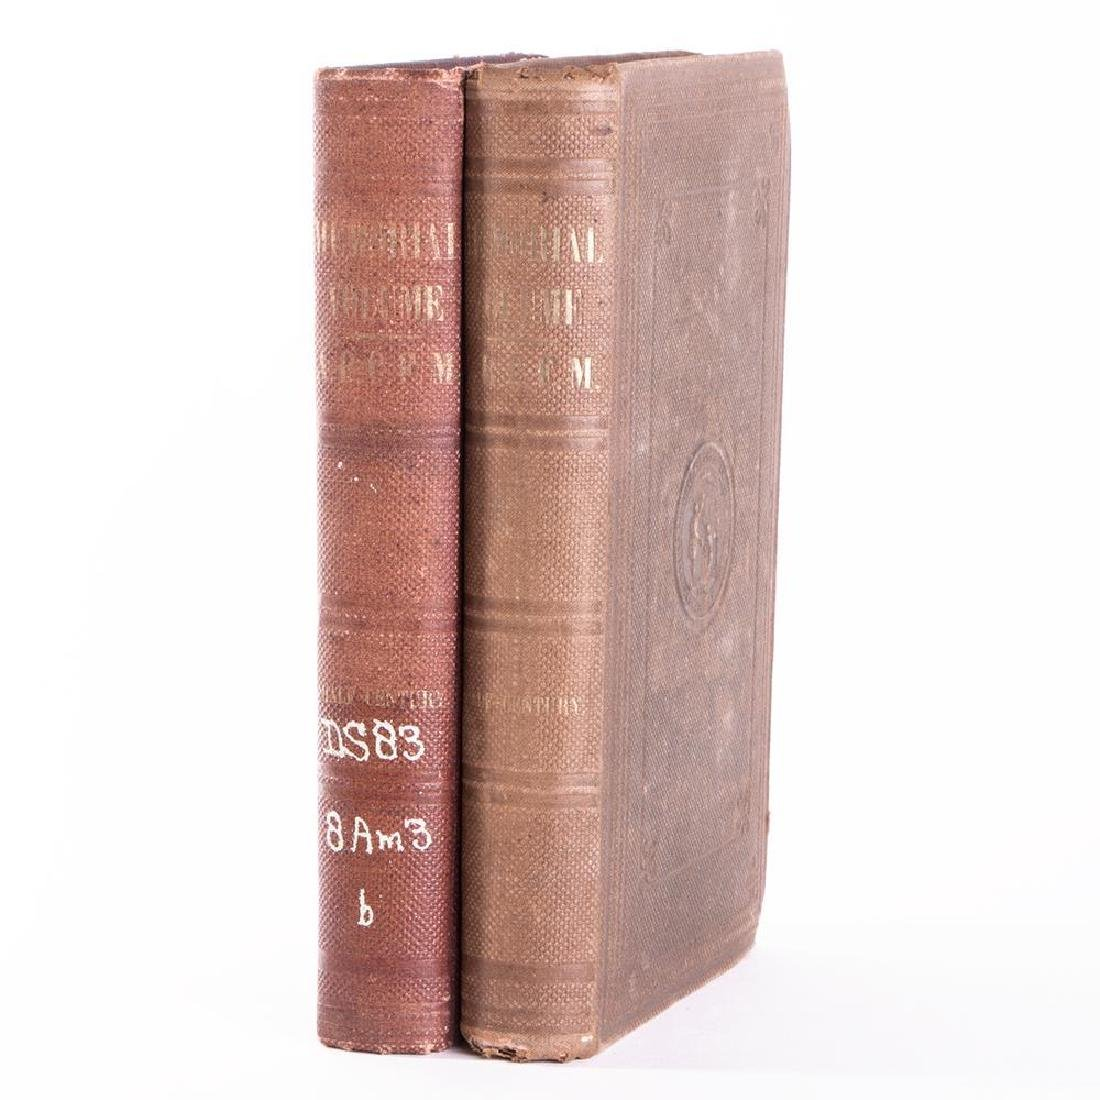 2 Editions, Memorial Volume of the First Fifty Years